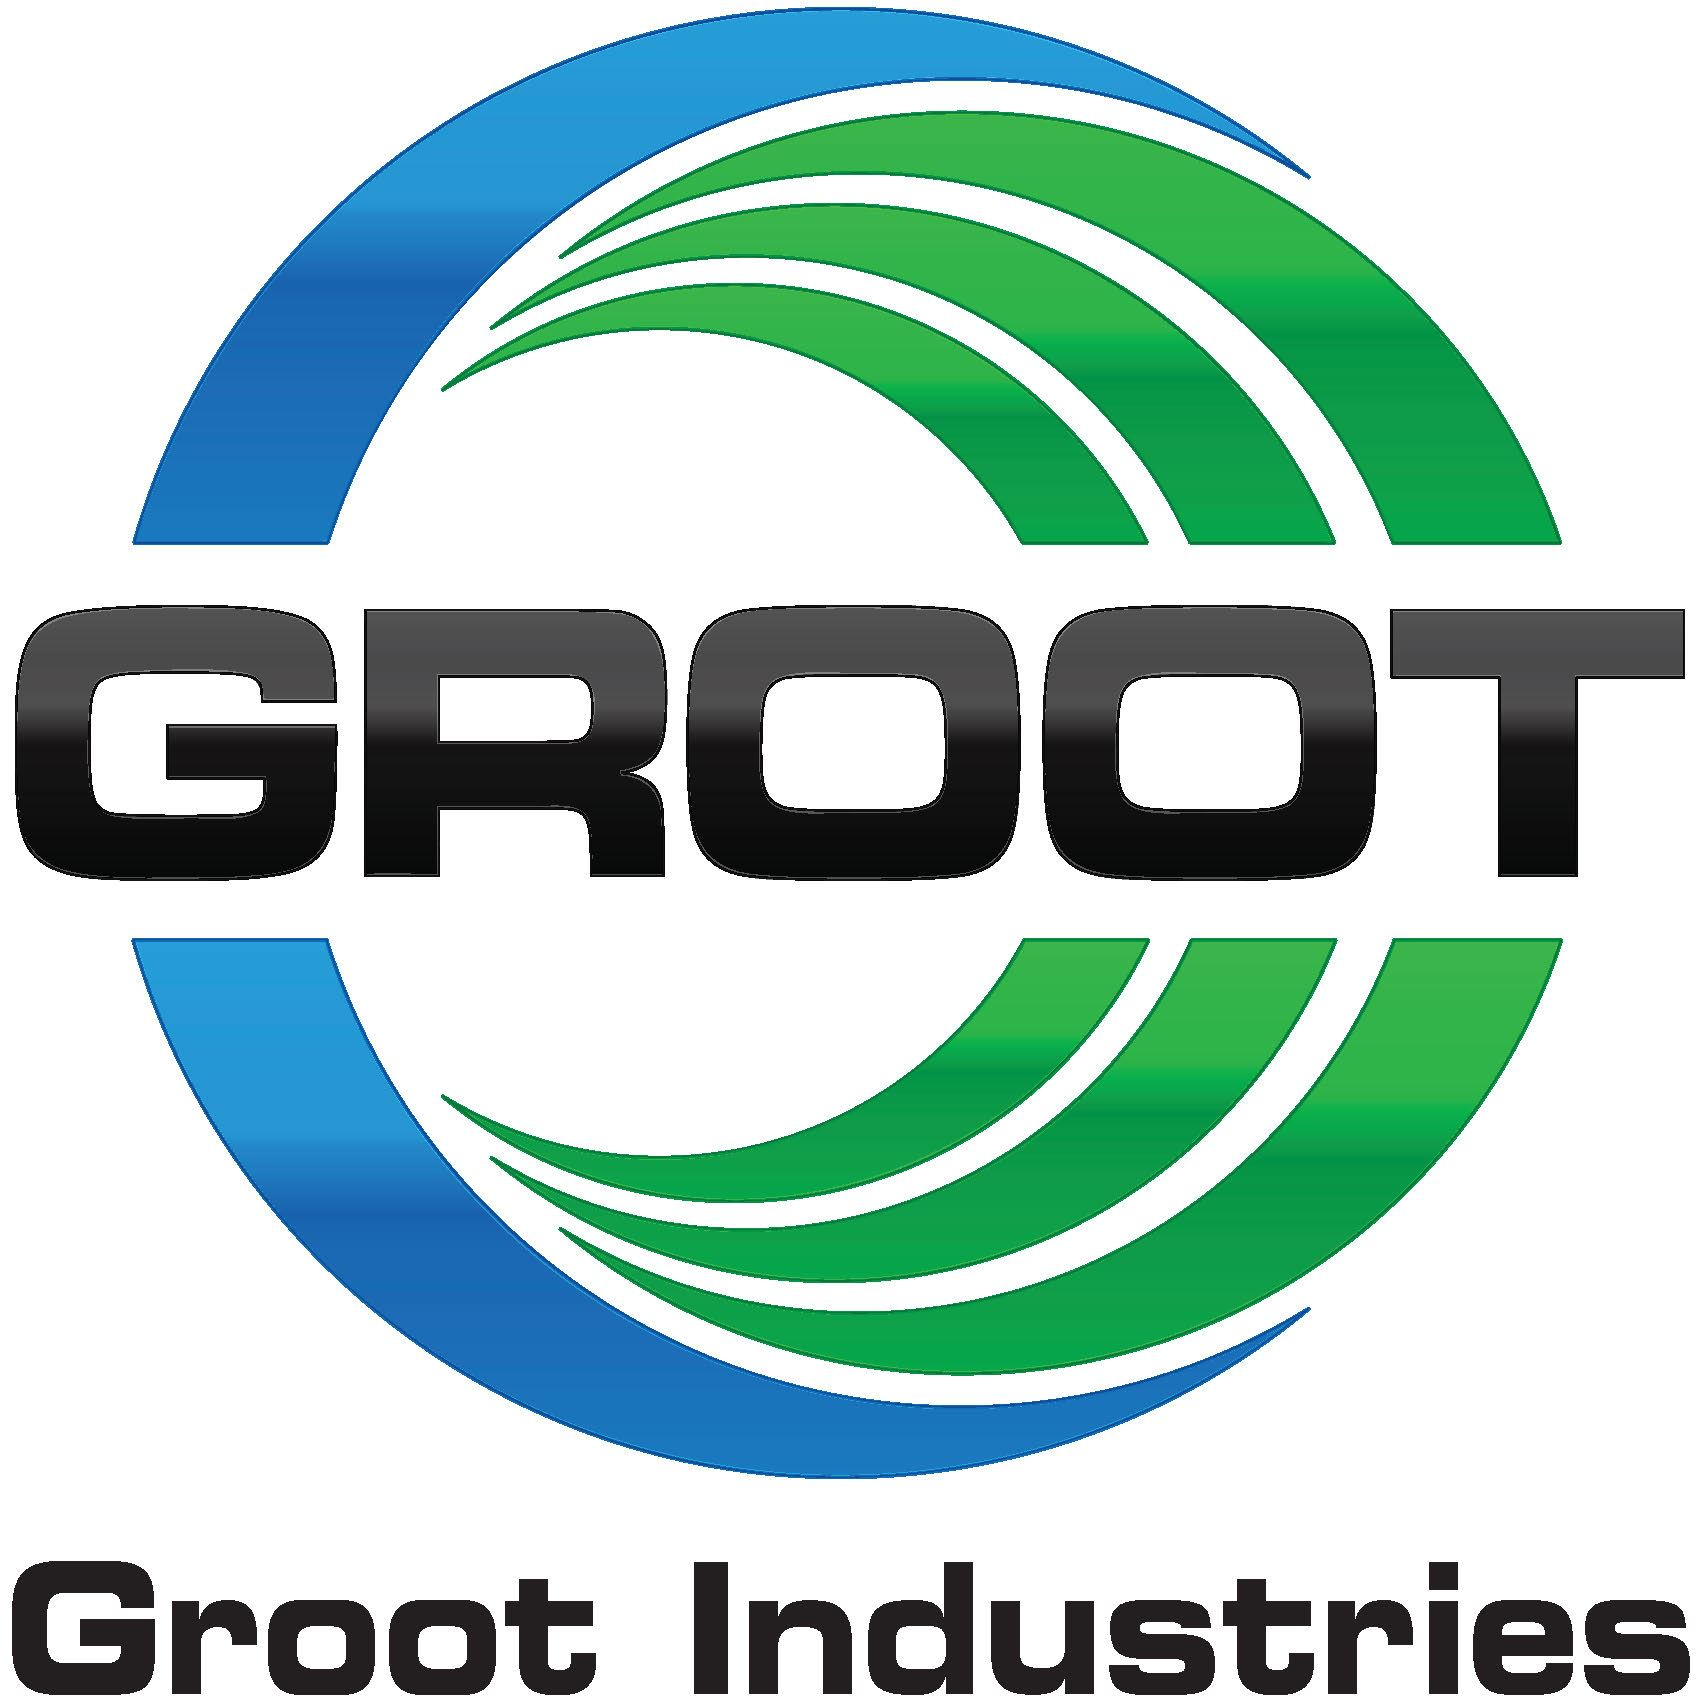 Groot Logo Darker Stretched Wording - eps file